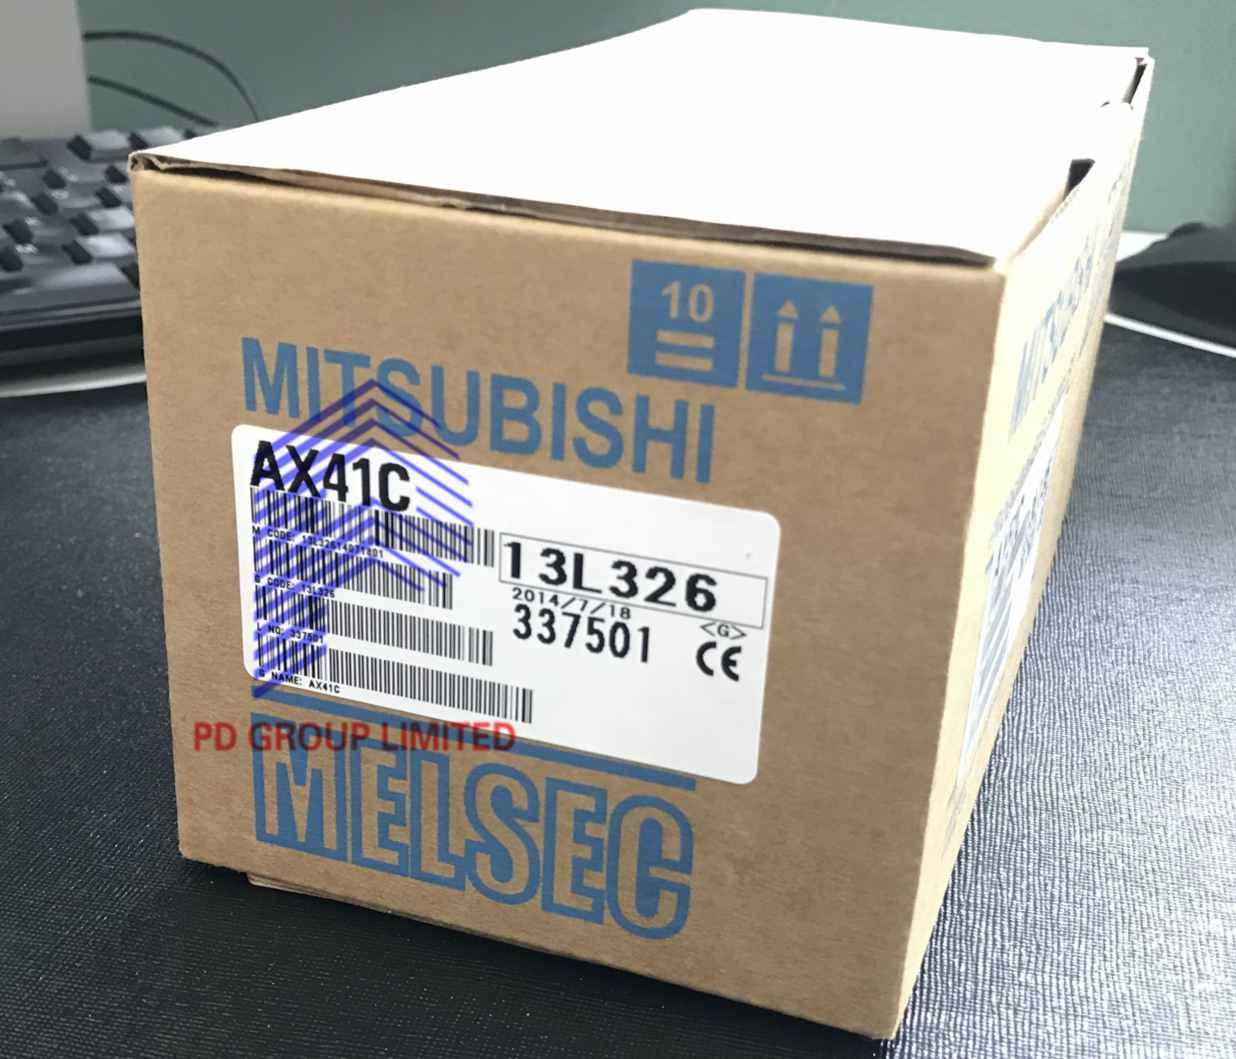 Brand new Japan MITSUBISHI A series CPU module AX41C free shipping warranty for 1.5 year